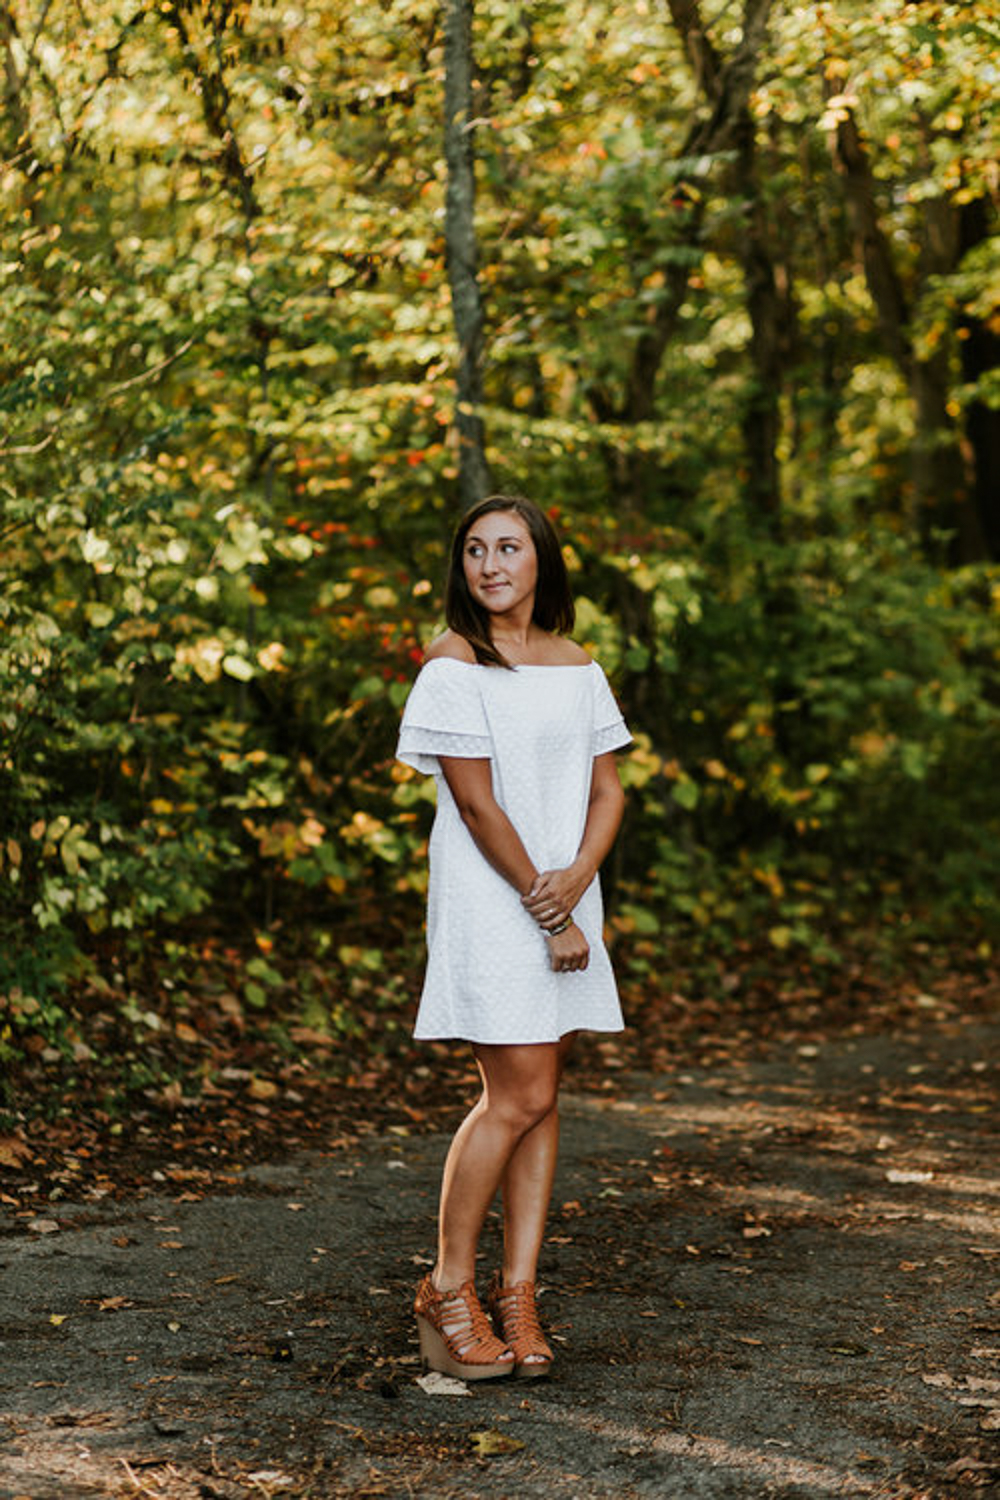 TaylorLaurenPhoto_Columbus_Ohio_Senior_Pictures-25.jpg